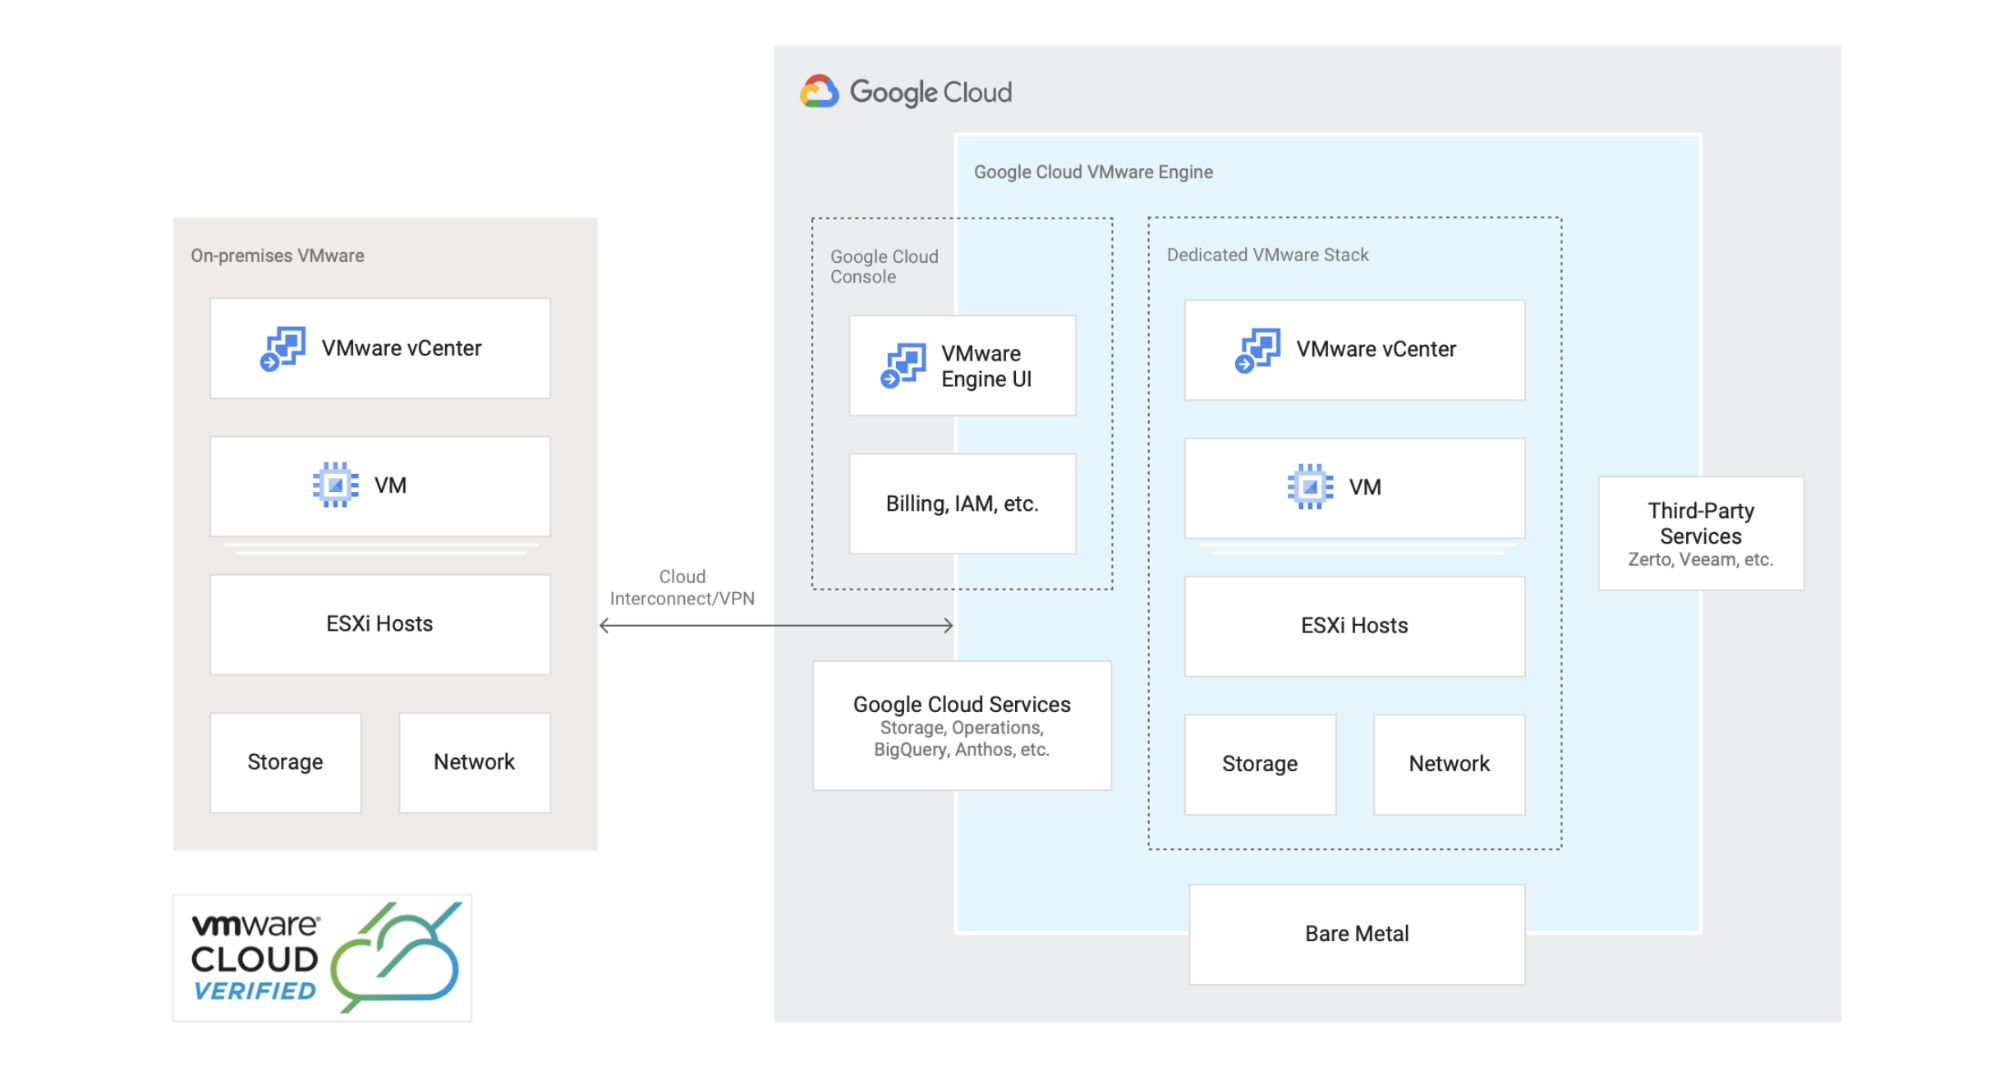 Reference architecture that shows how to migrate or extend your VMware environment to Google Cloud.